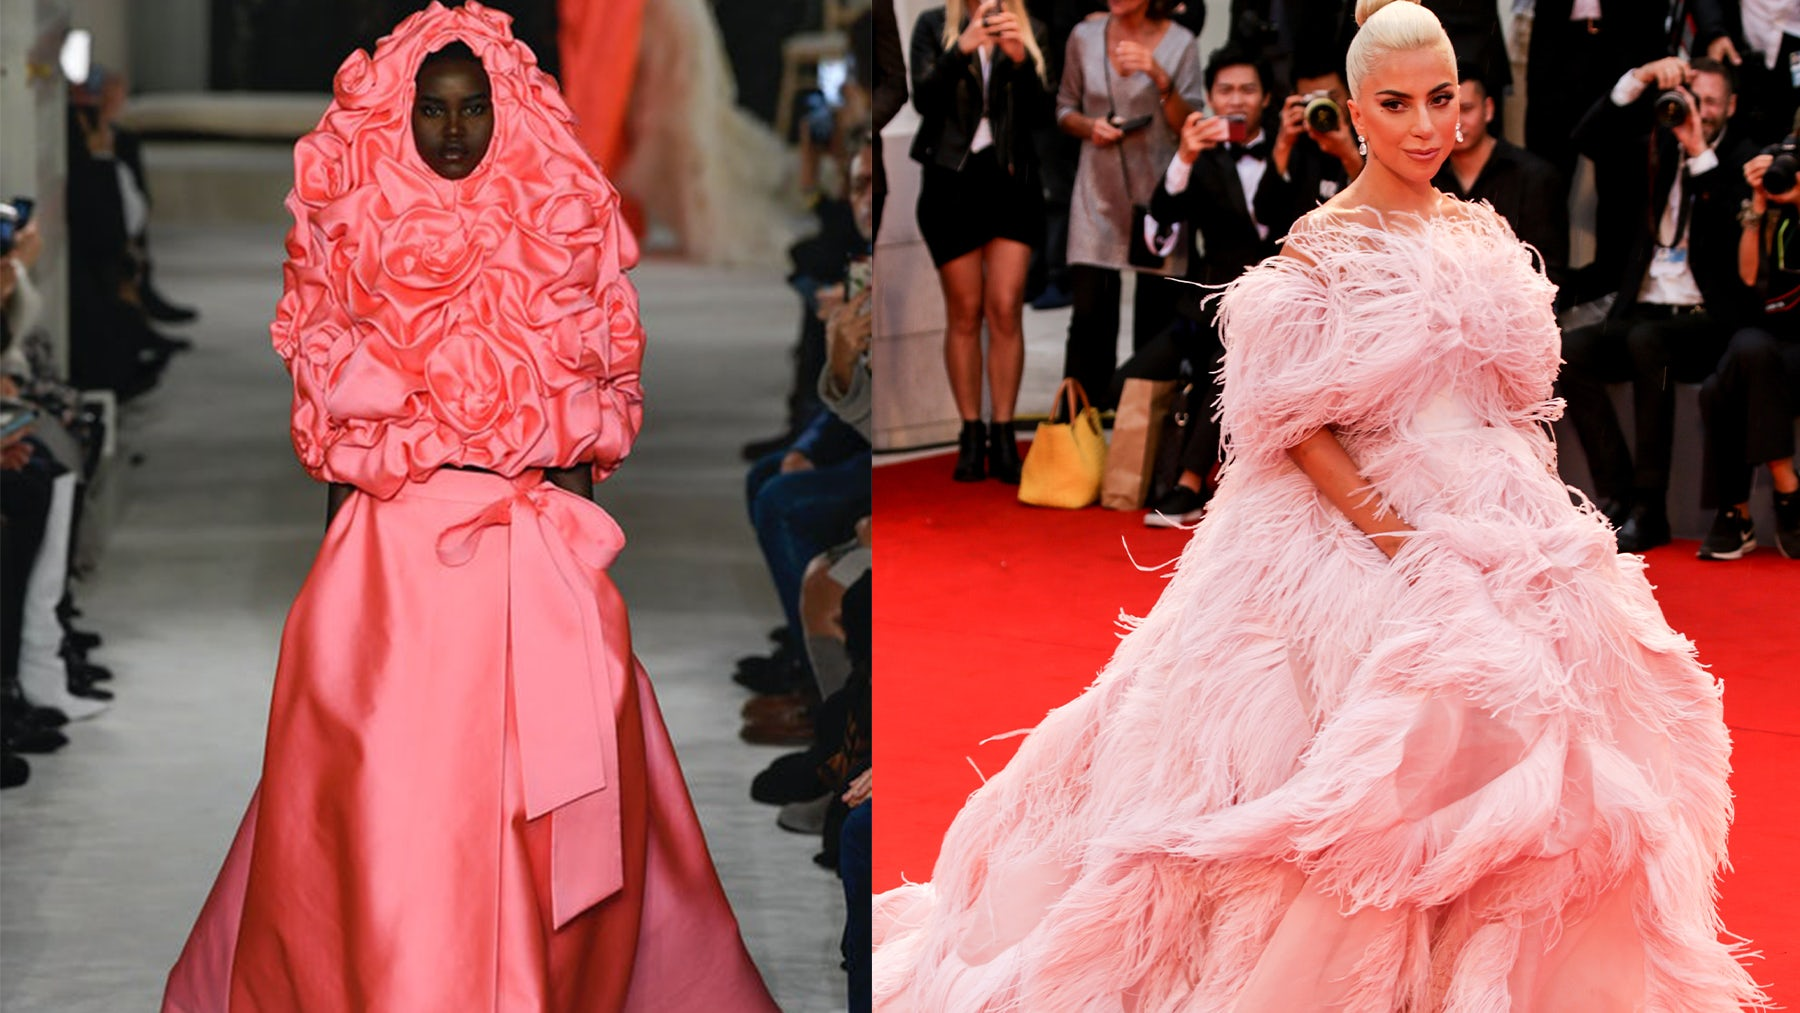 Adut Akech in Valentino Spring 2019 Couture, Lady Gaga in Valentino Fall 2018 Couture. Getty Images.